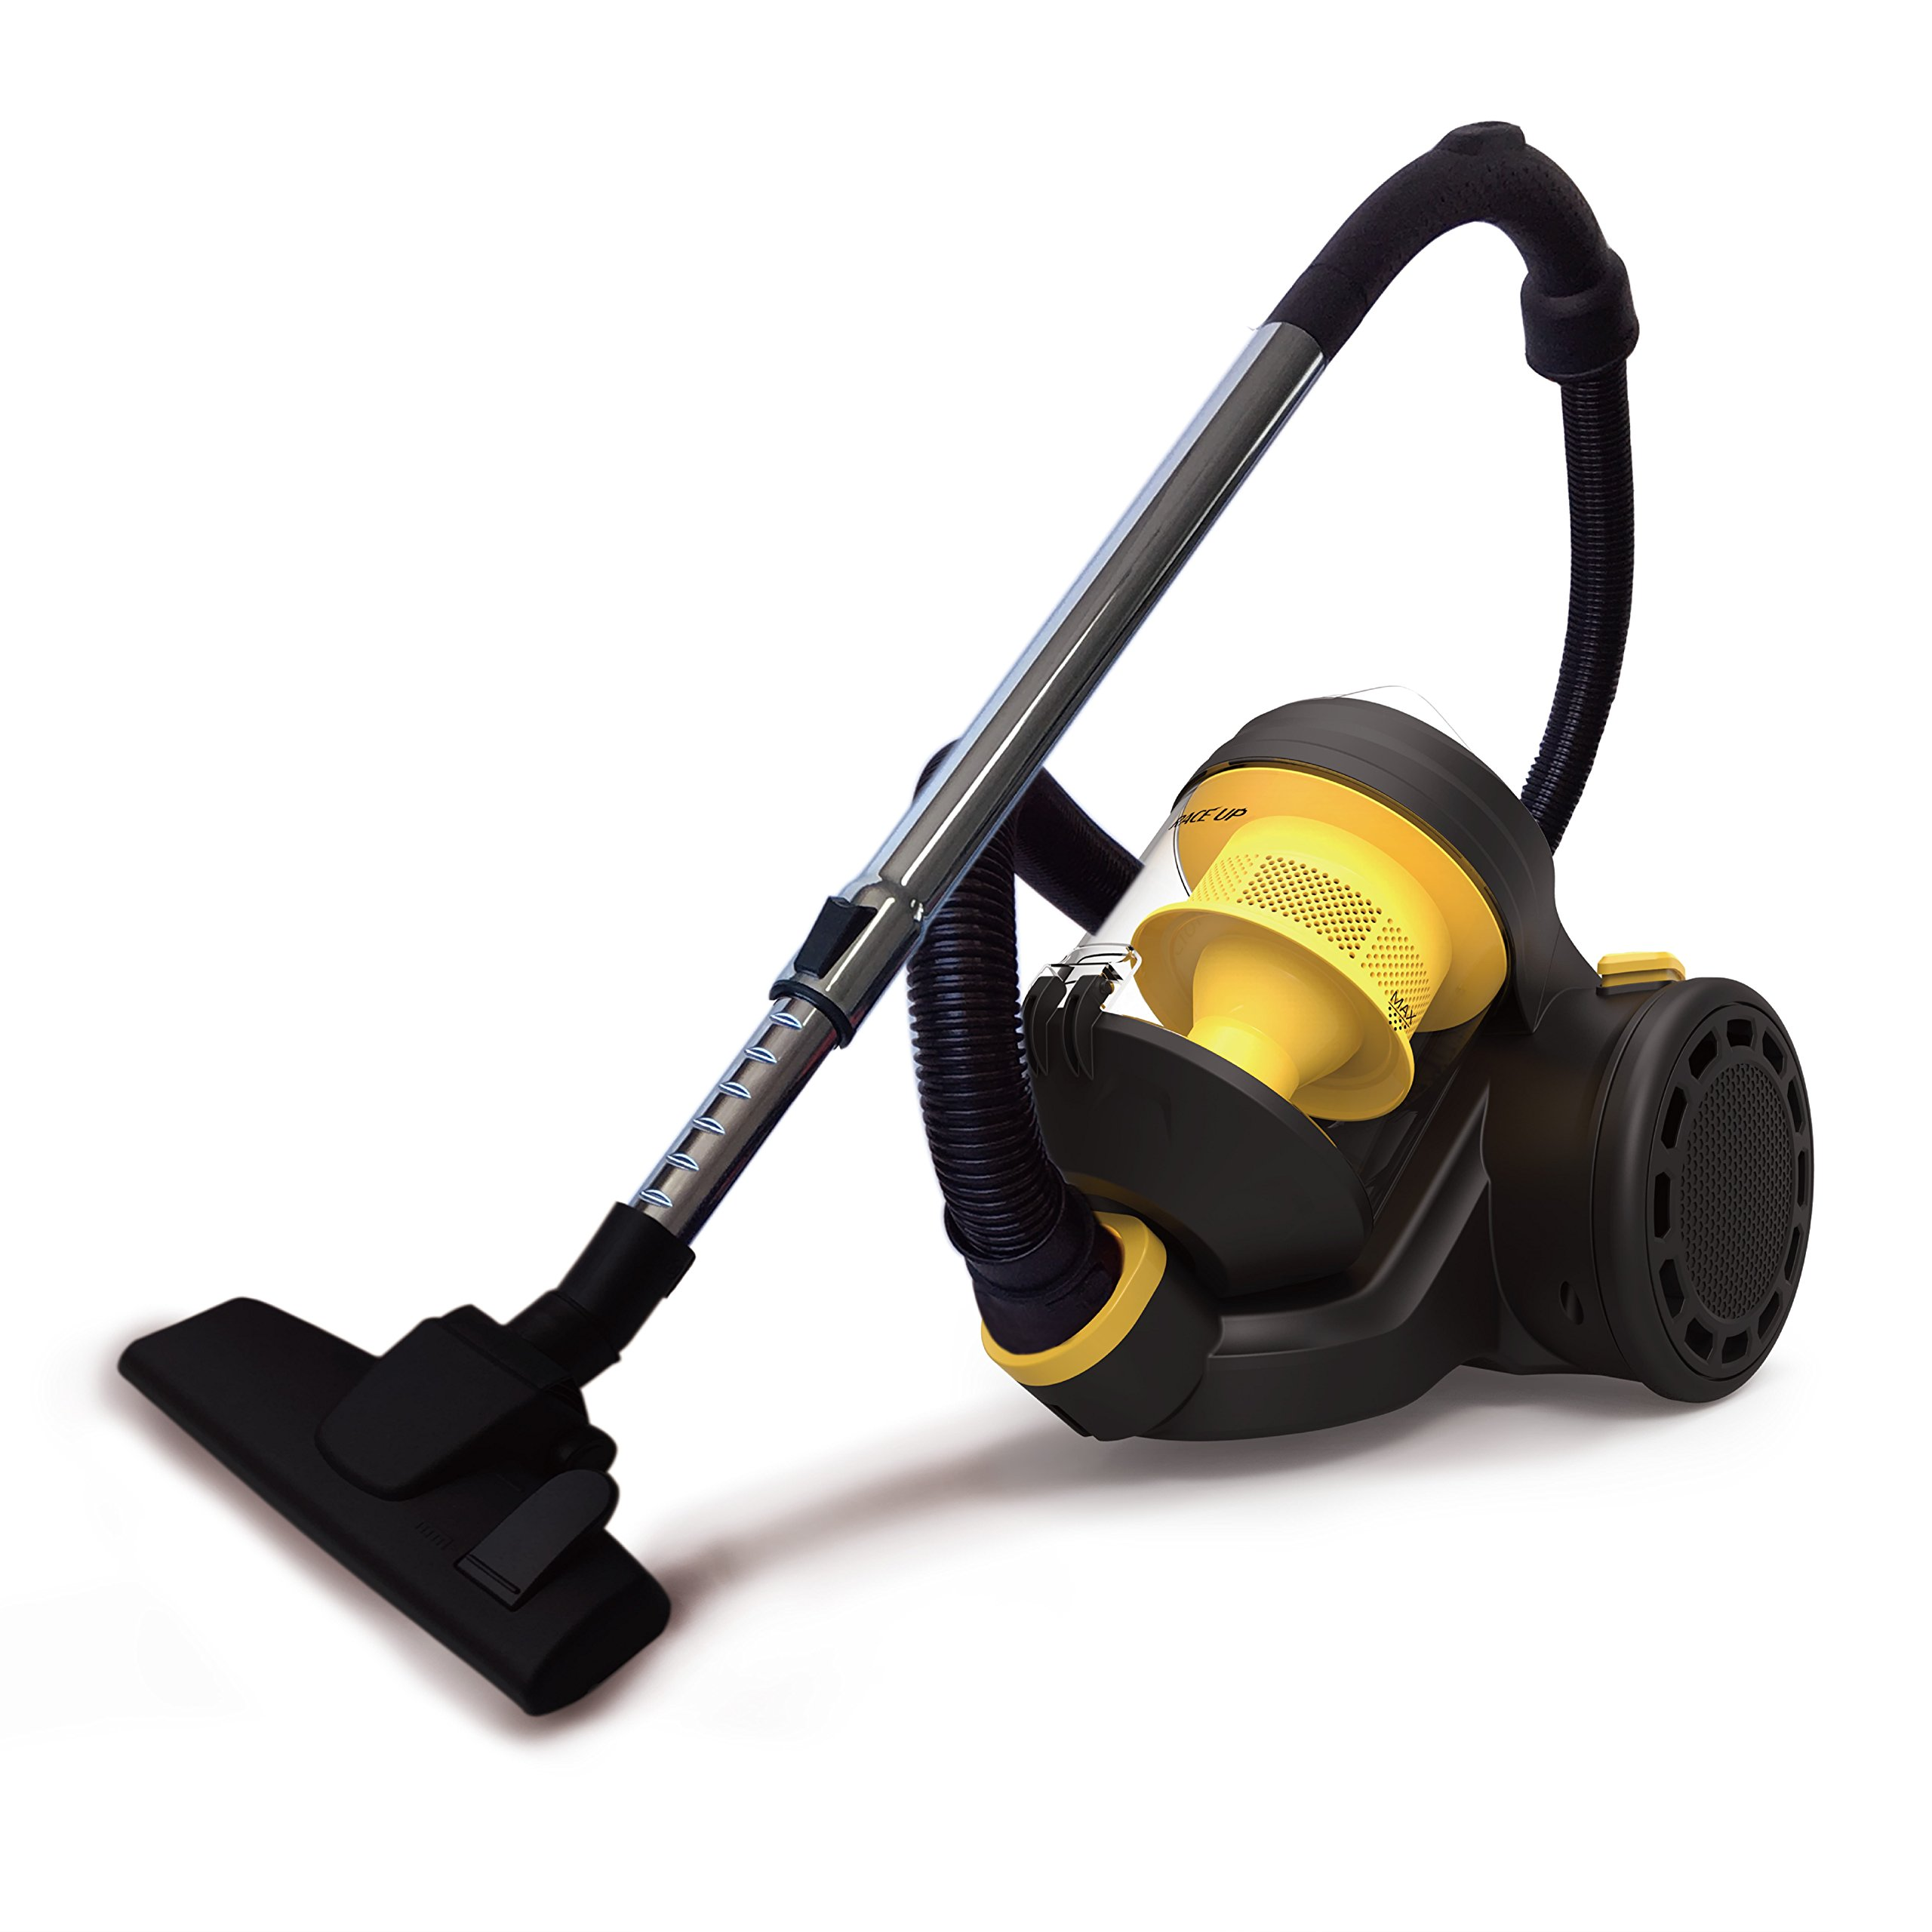 RACEUP Canister Vacuum Cleaner Cyclonic Bagless With HEPA Filter And Clean Air Filtration - Corded(CJ1150) (Yellow)